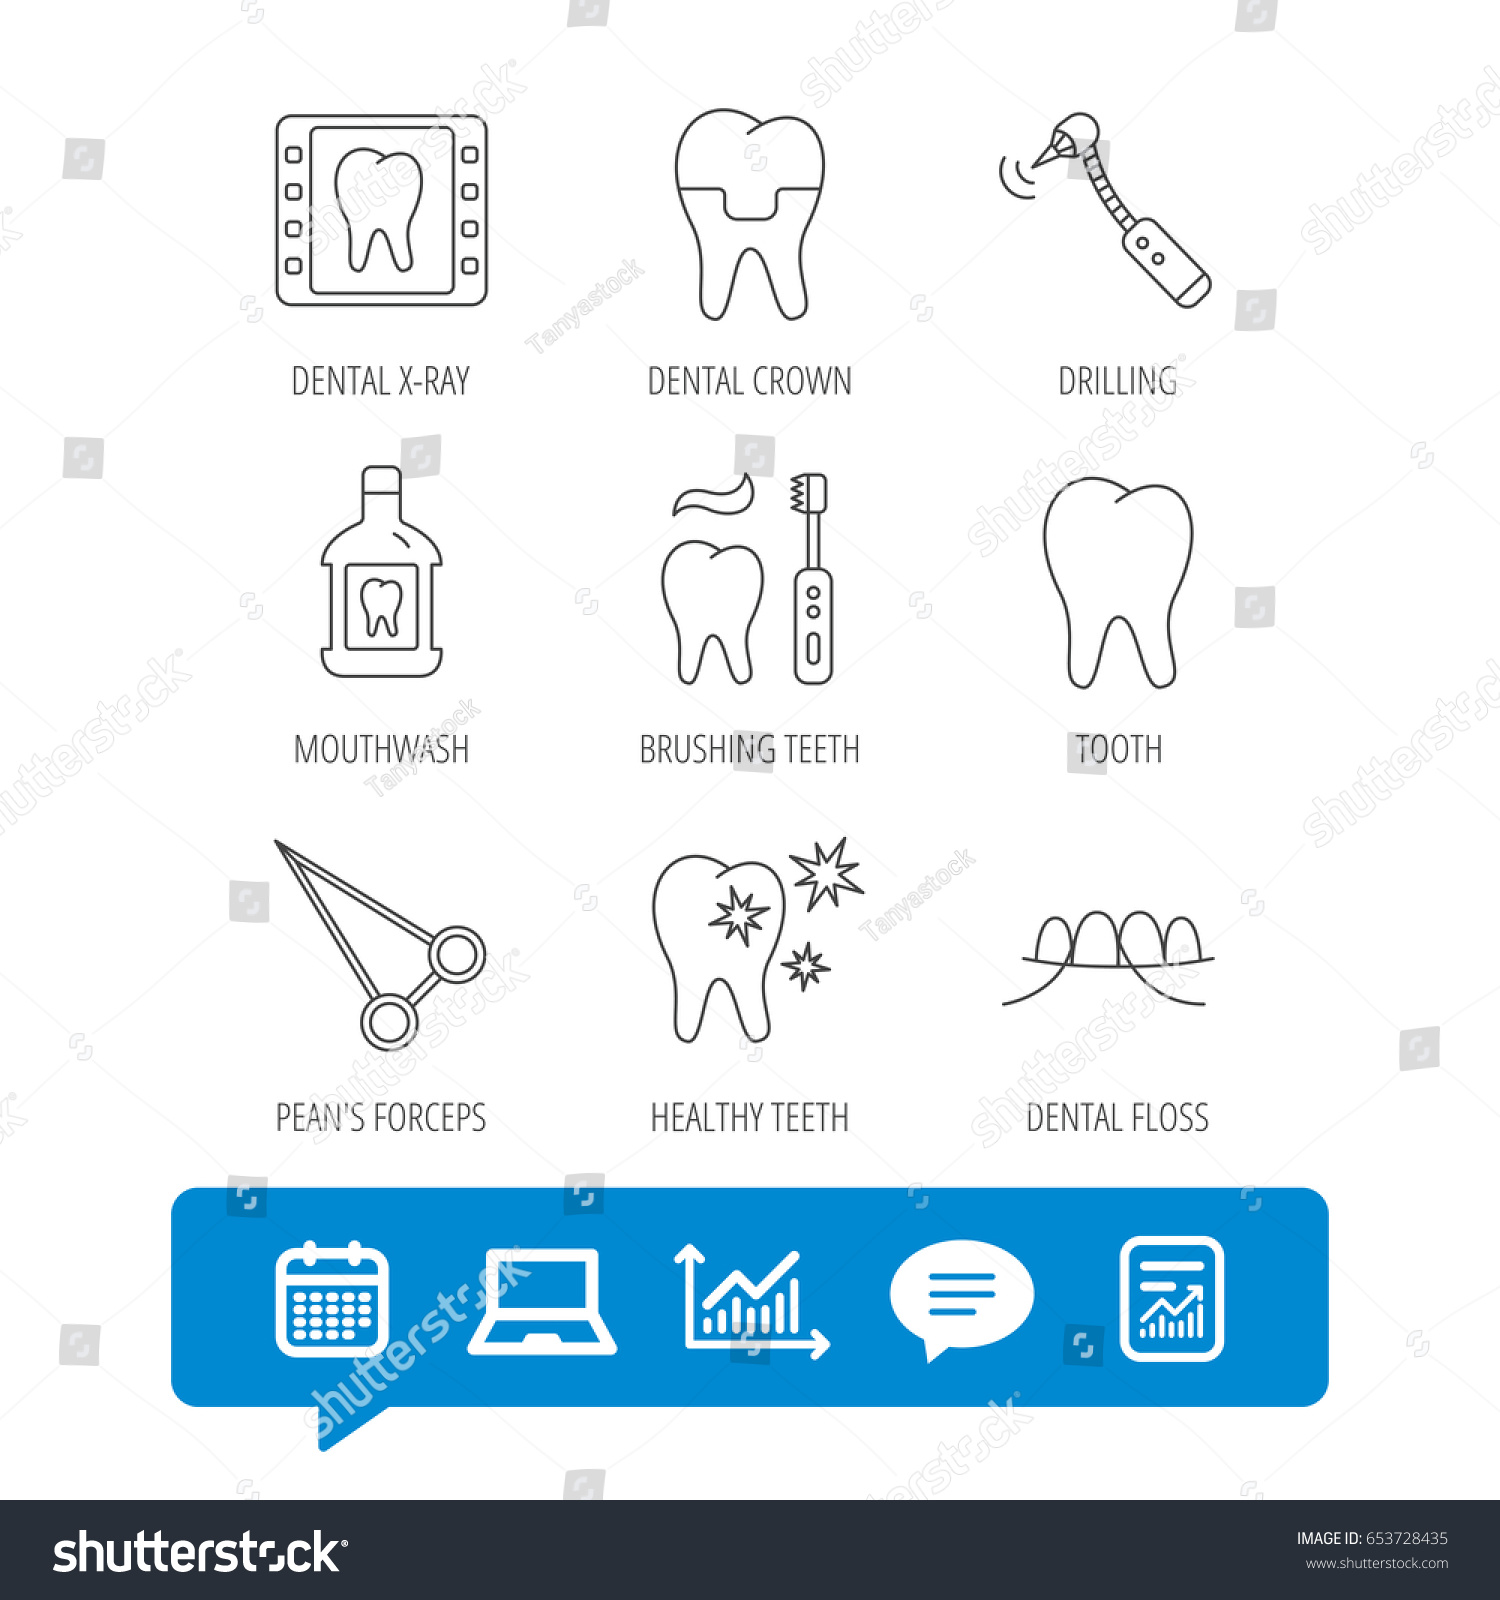 Stomatology tooth dental crown icons xray stock vector 653728435 stomatology tooth and dental crown icons x ray mouthwash and dental floss biocorpaavc Gallery